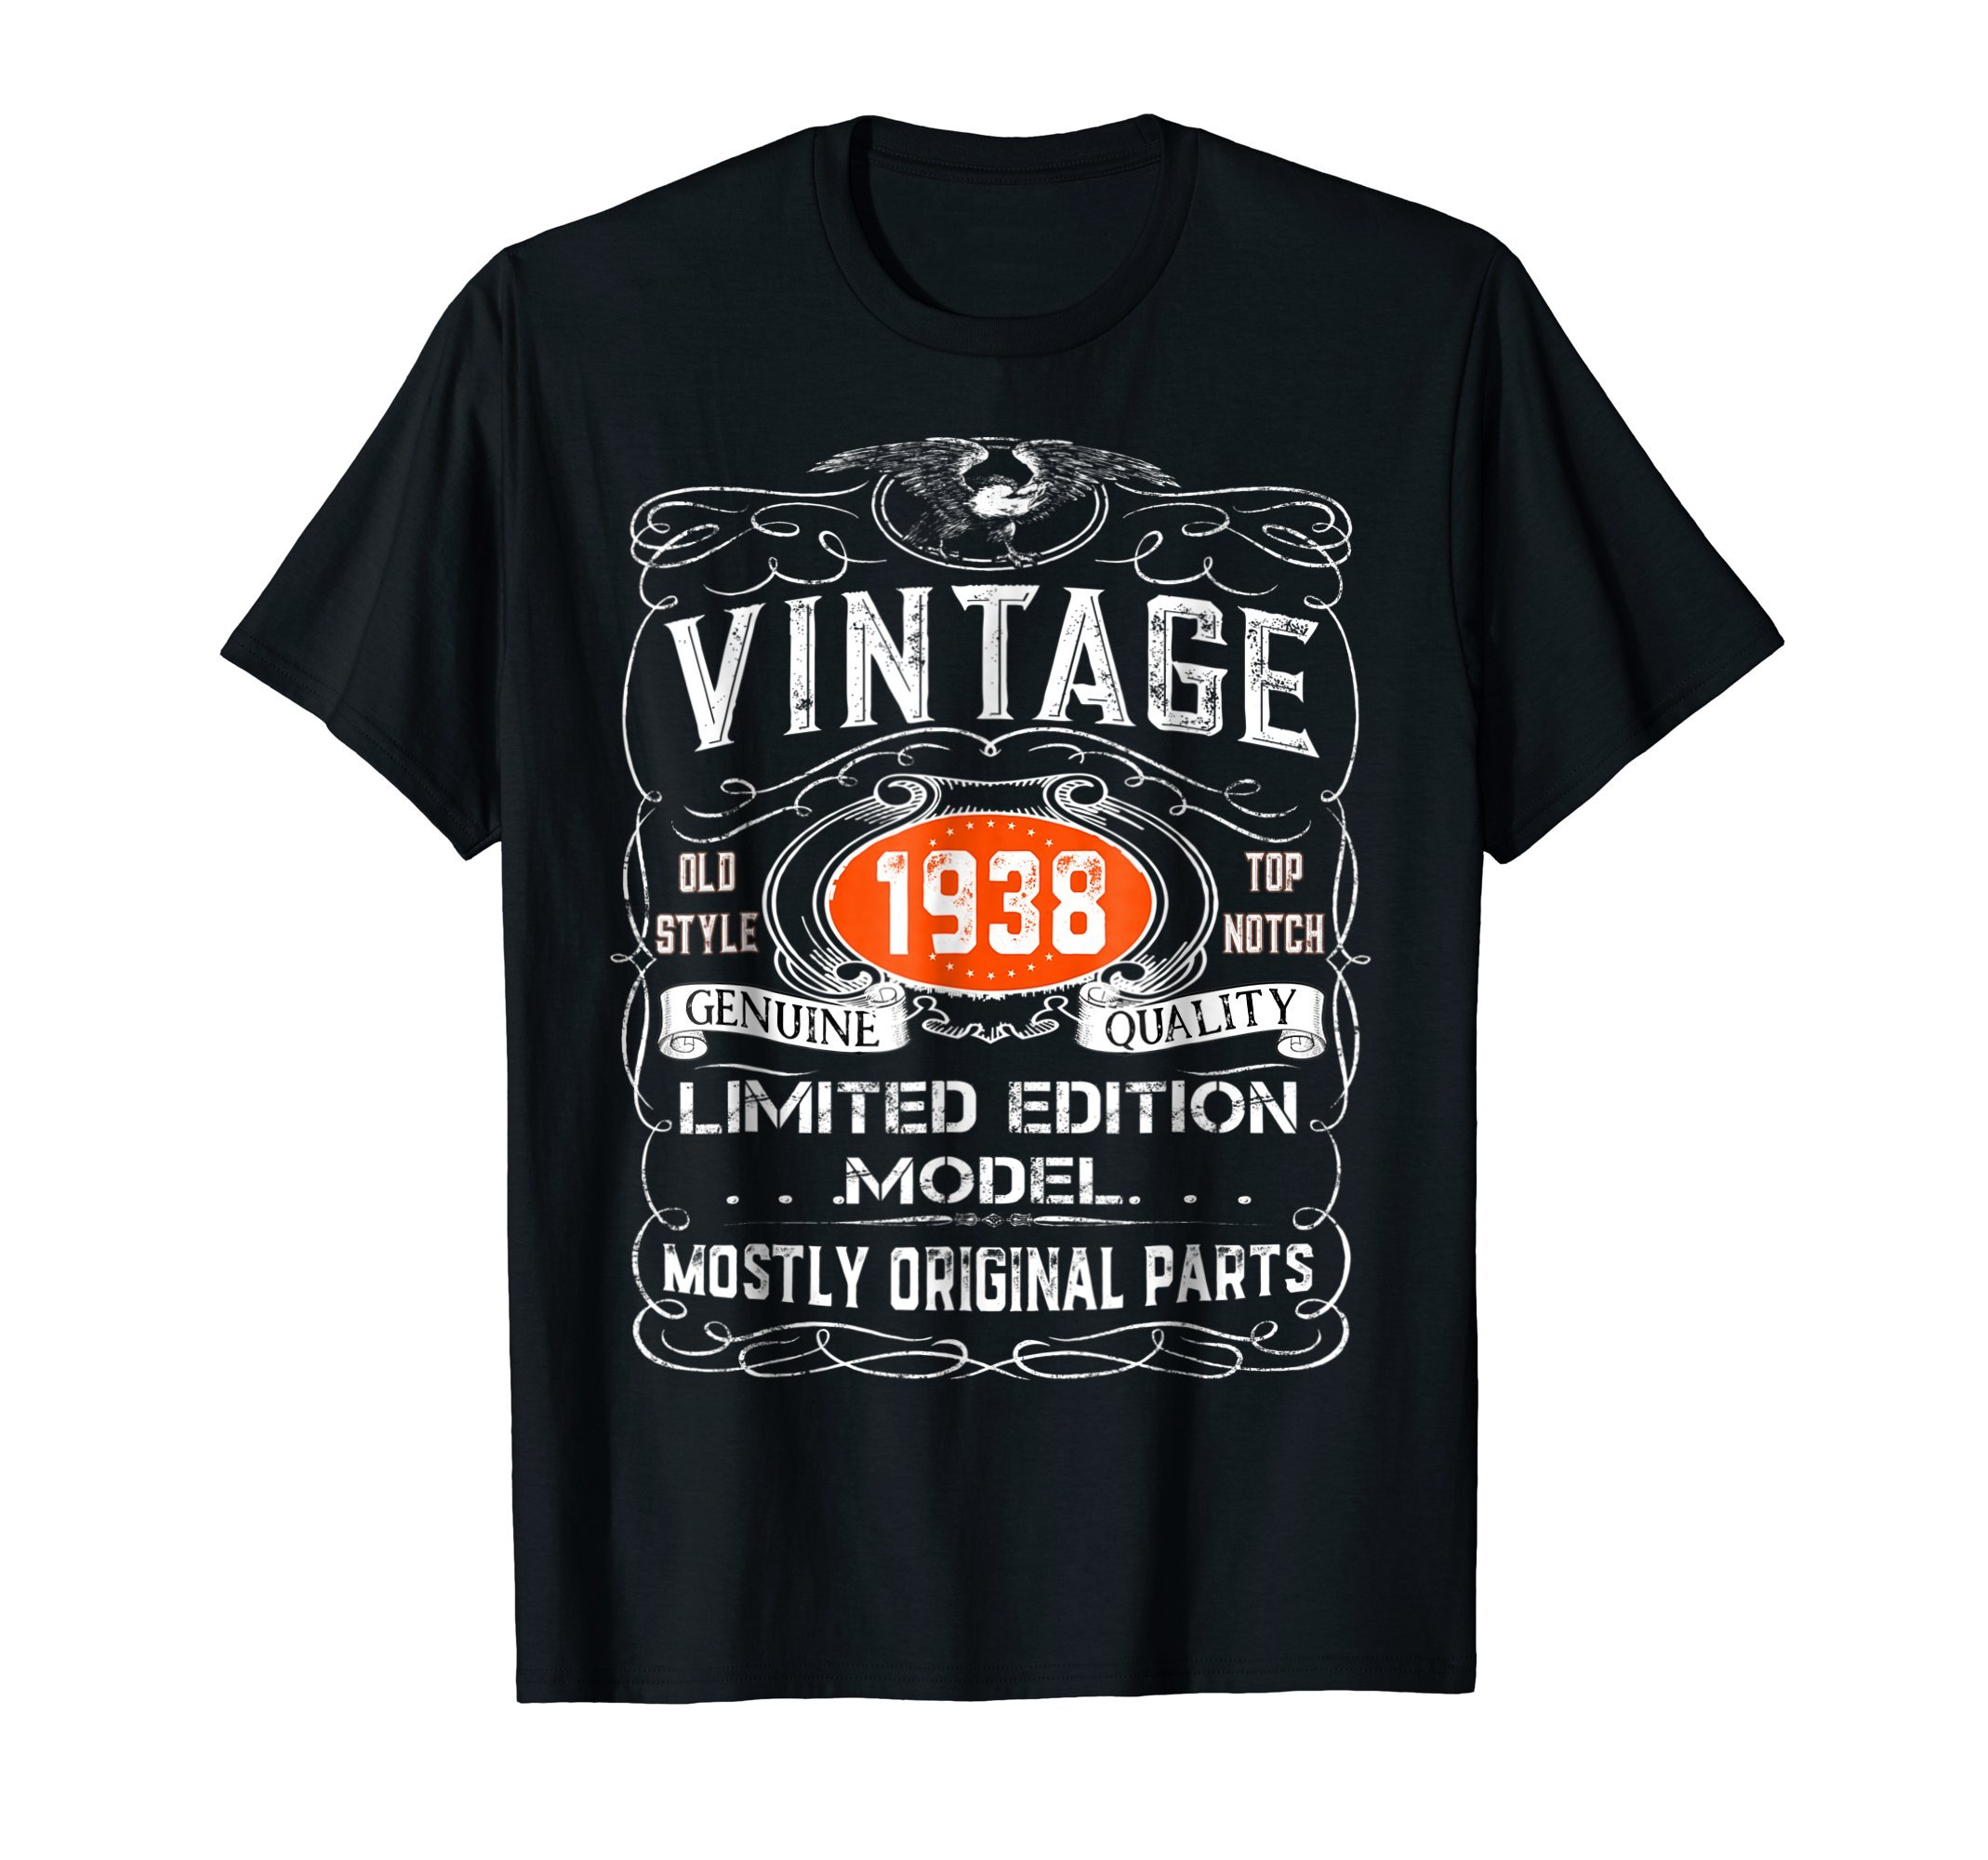 Vintage 1938 T-Shirt - 80th birthday gift shirt by Vintage Gift Tees (Image #1)